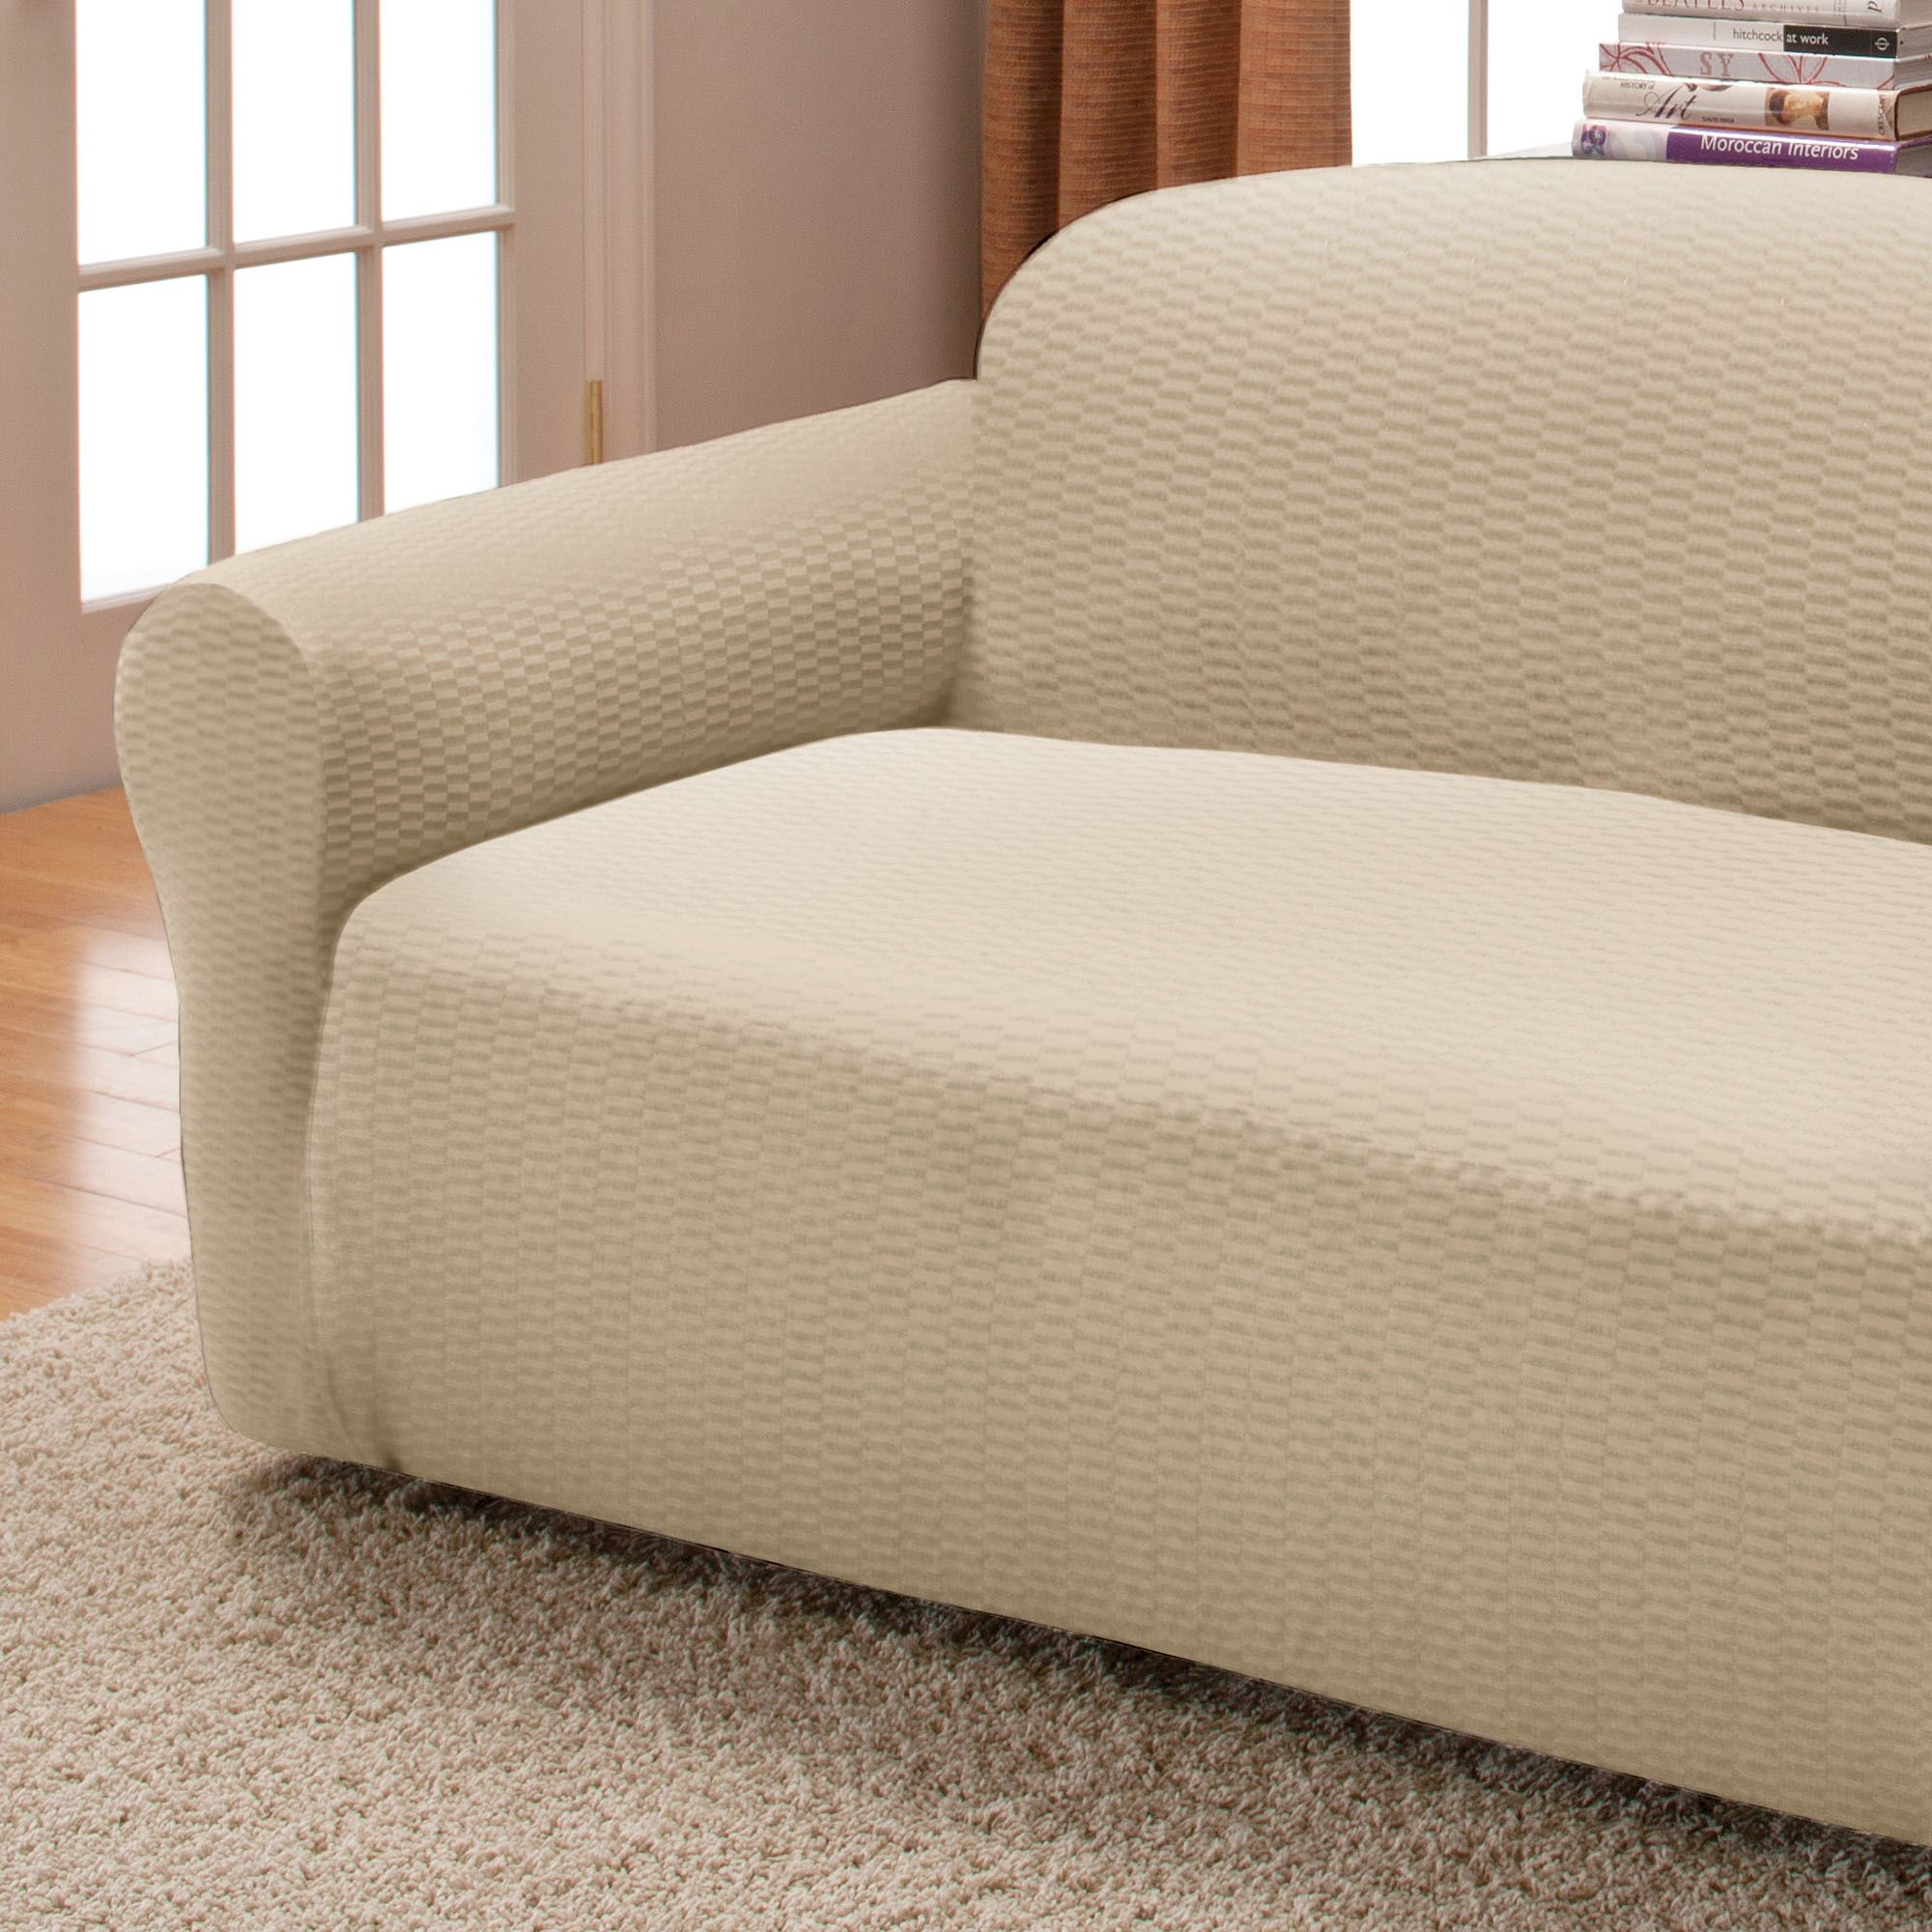 pdx wayfair subway box slipcover reviews cushion fit sofa stretch furniture simple sure slipcovers